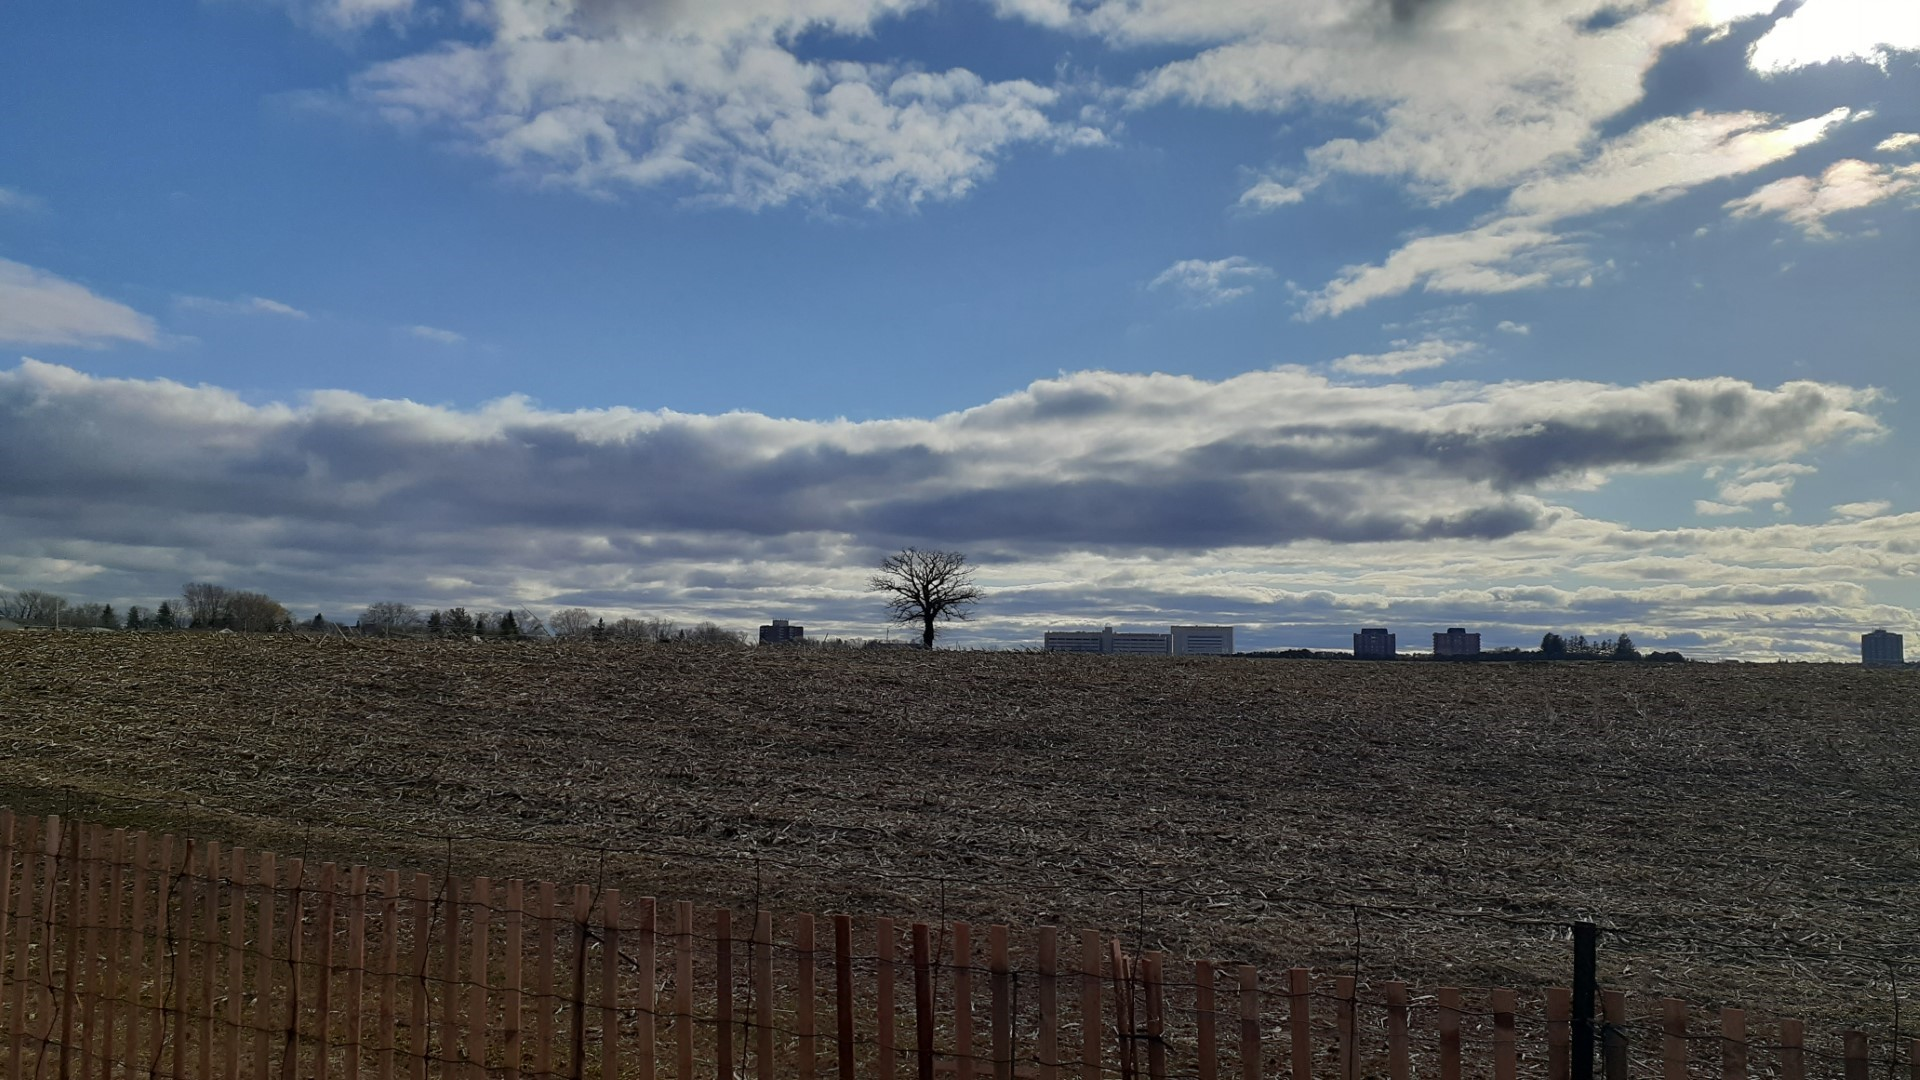 Tree that takes self-isolation very seriously, Ottawa, Experimental Farm, April 2020